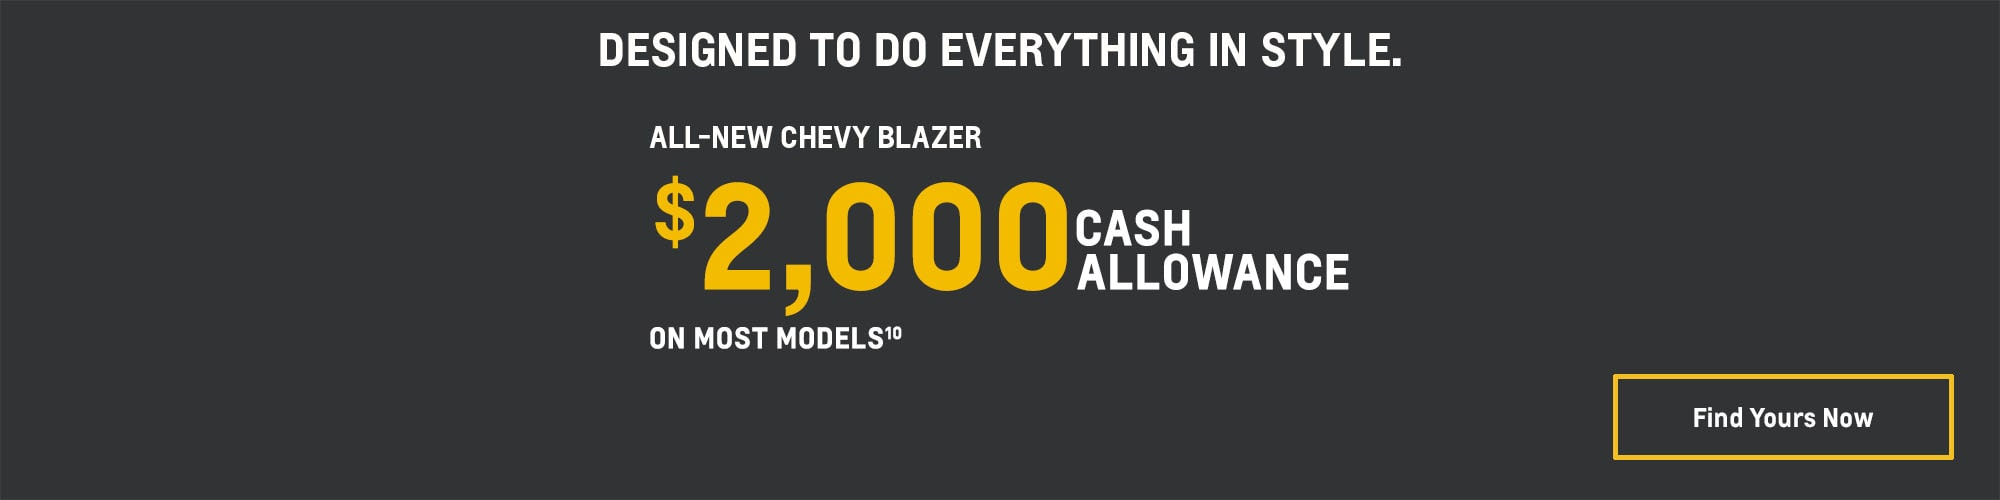 2019 Chevrolet Blazer: $2,000 Cash Allowance